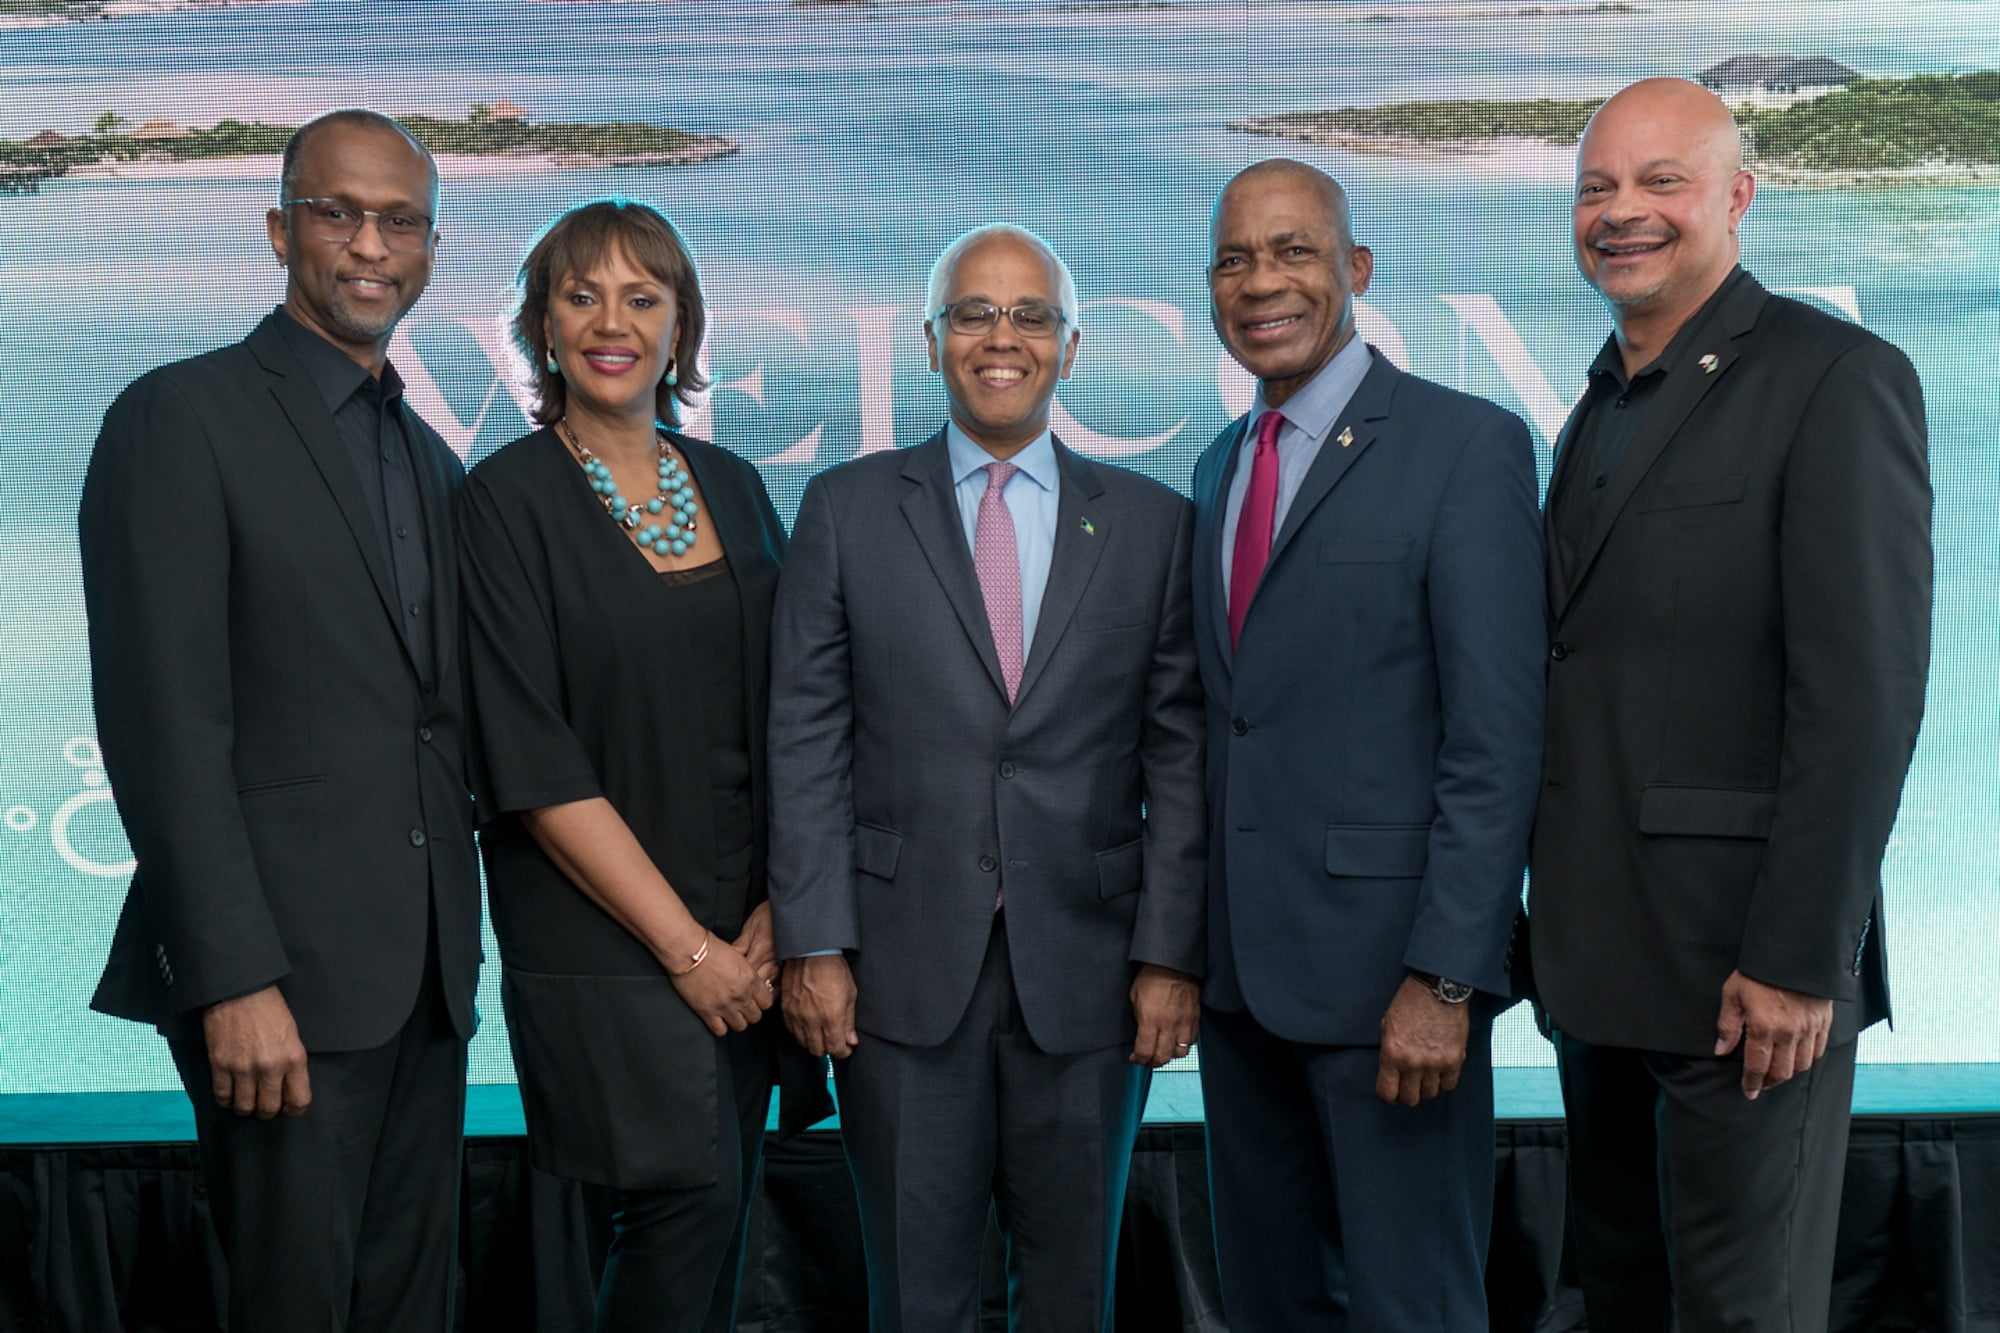 New Orleans mayor welcomed Bahamas tourism minister at New Orleans jazz festival